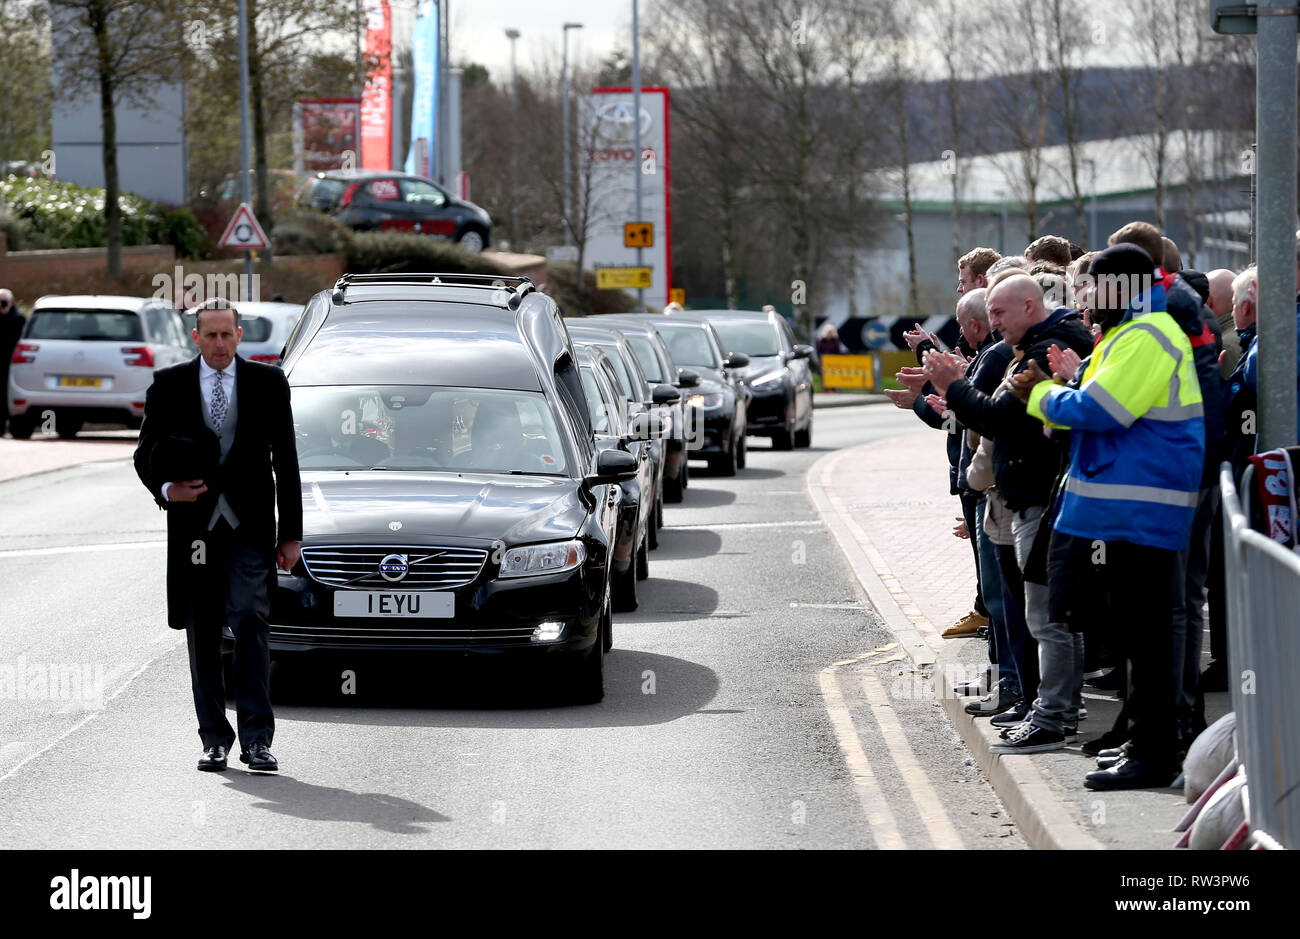 Members of the public applaud as the Gordon Banks funeral cortege passes by the bet365 Stadium, Stoke. - Stock Image